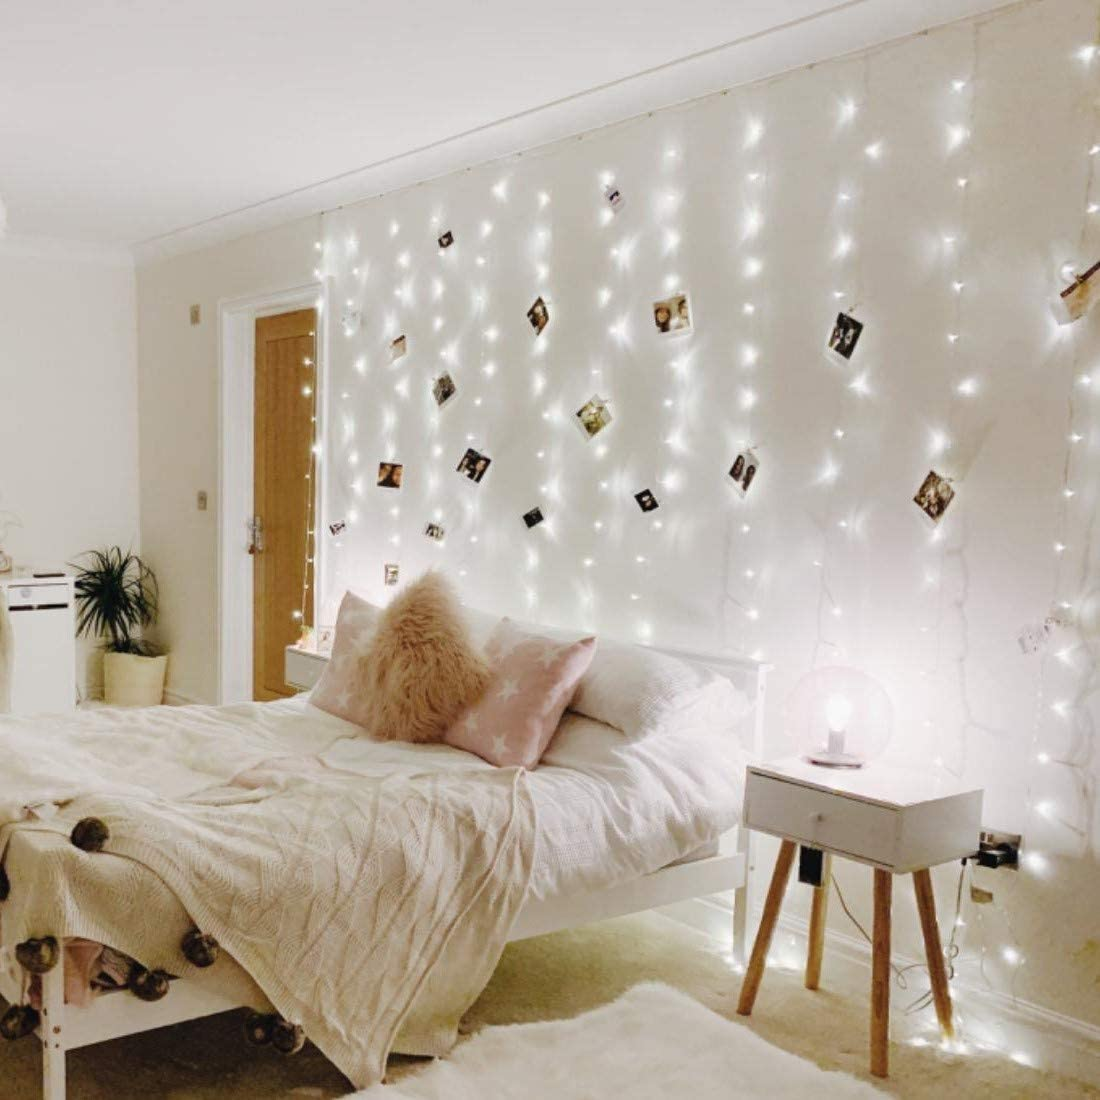 Amazon Com Le Led Curtain Lights 9 8x9 8ft 306 Led 8 Modes Plug In Twinkle Lights Cool White Indoor Outdoor Decorative Wall Window String Lights For Bedroom Party Wedding Backdrop Patio Decor And More